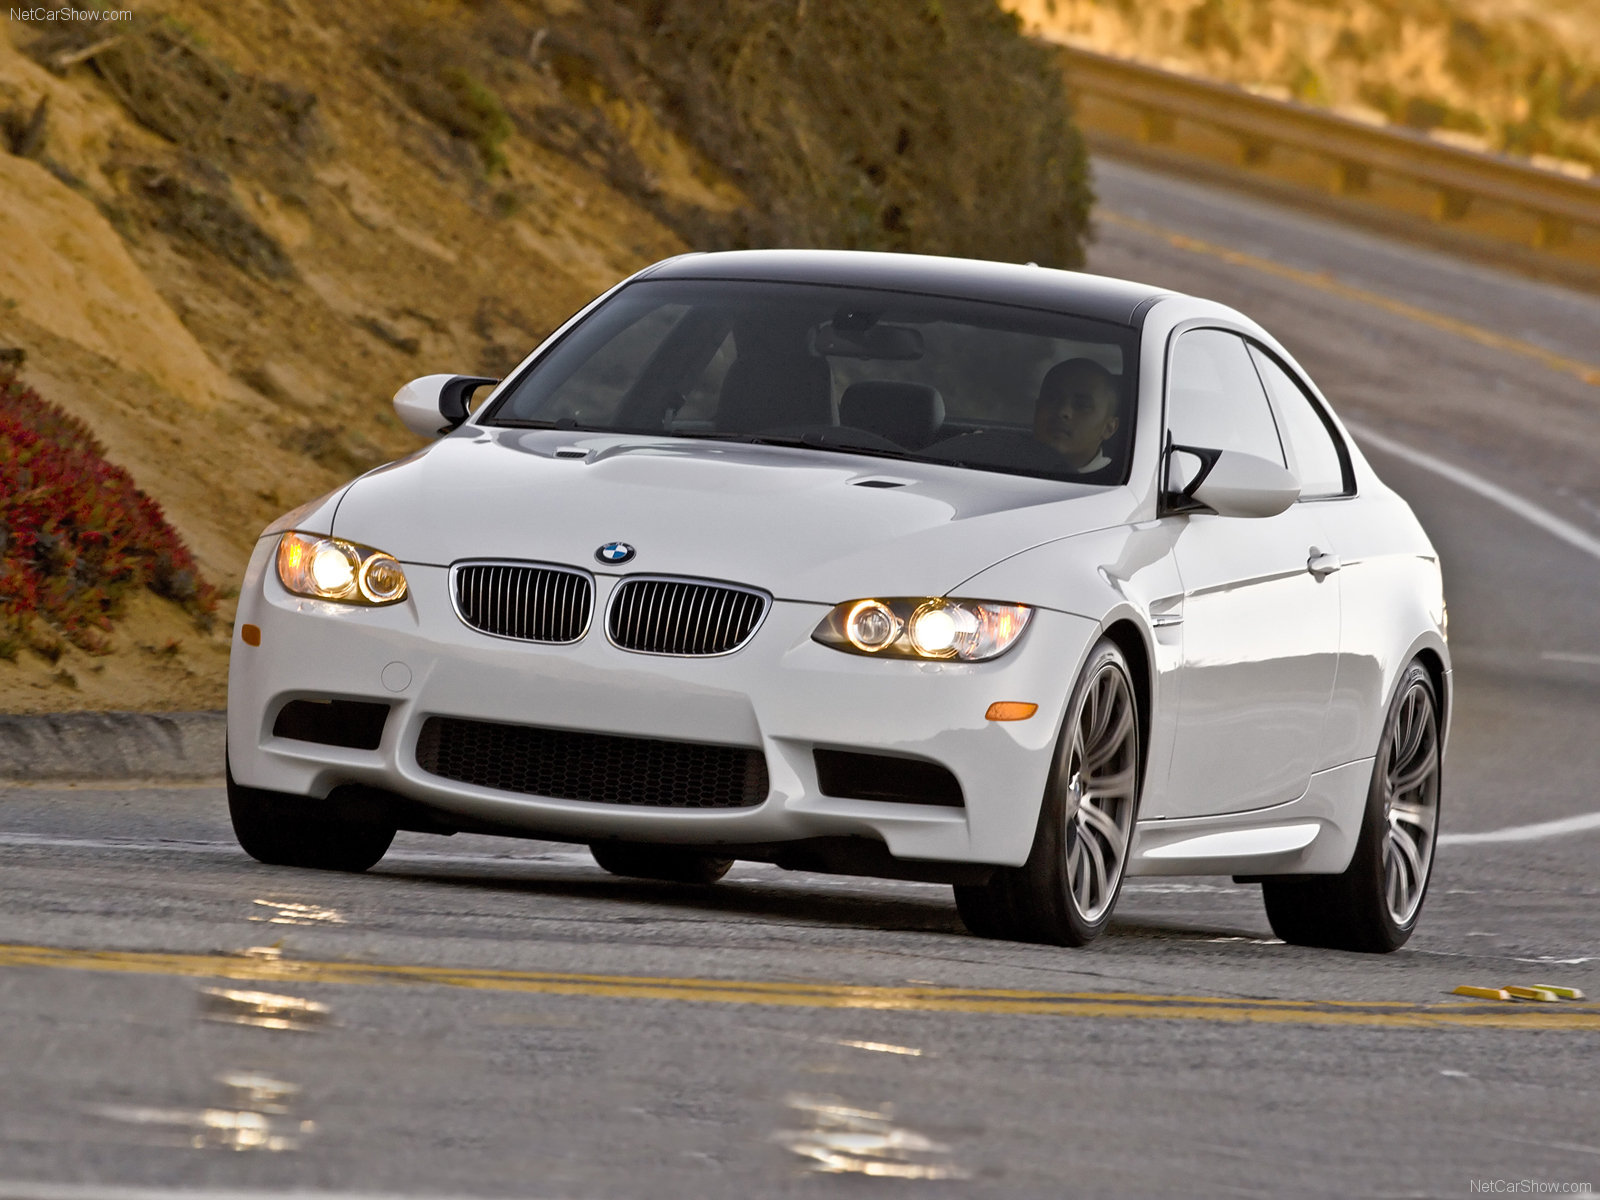 bmw m3 e92 coupe picture 61933 bmw photo gallery. Black Bedroom Furniture Sets. Home Design Ideas